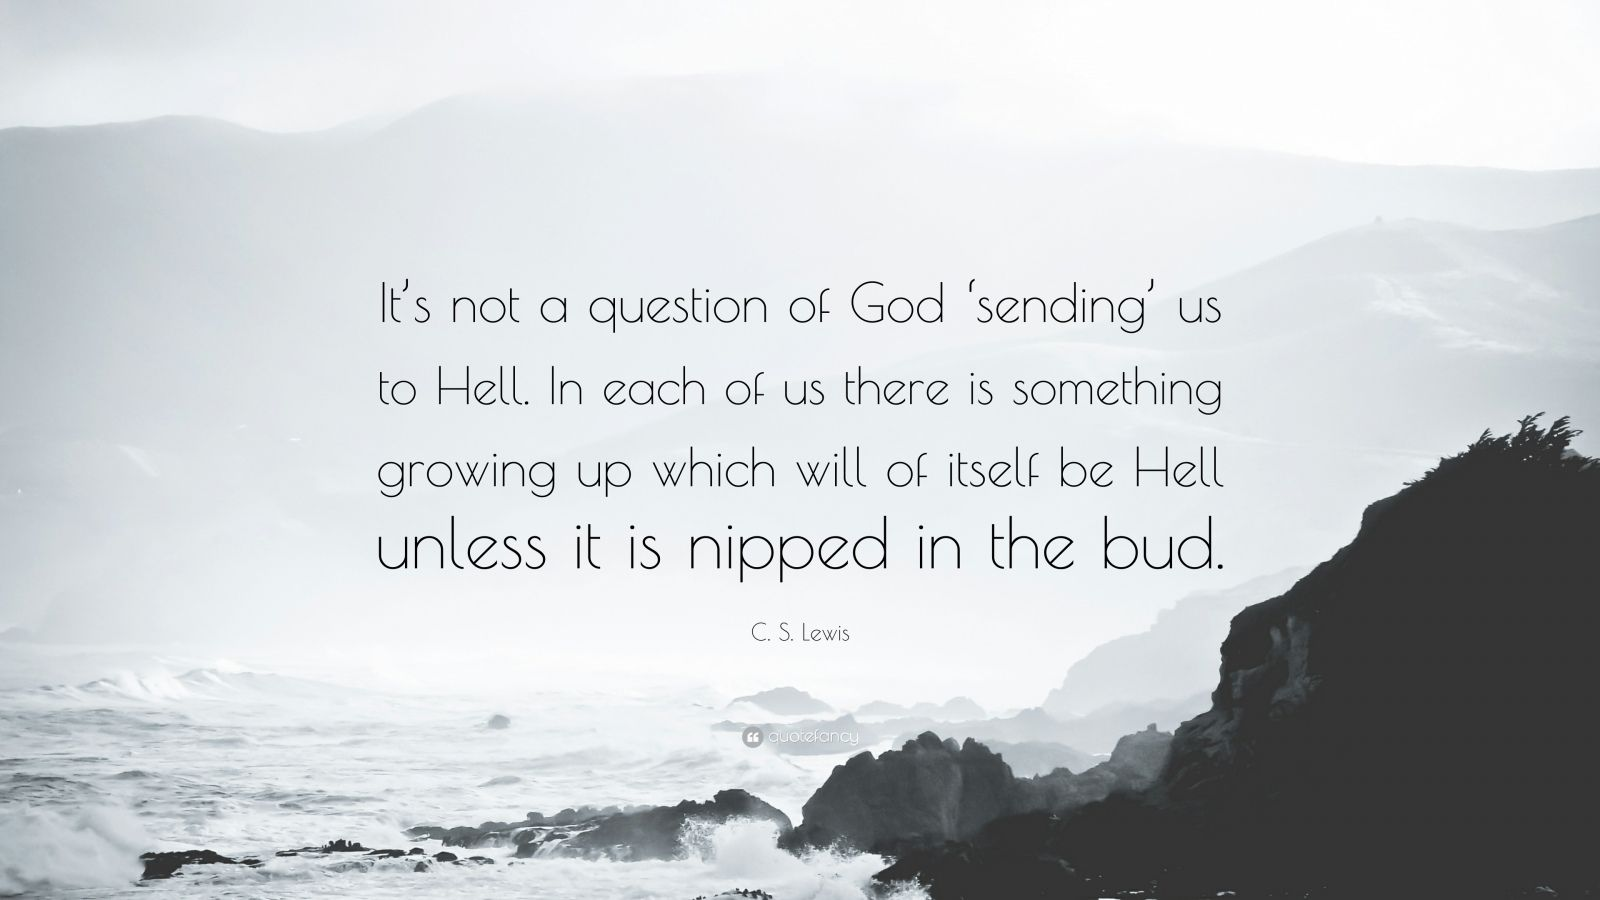 """C. S. Lewis Quote: """"It's not a question of God 'sending' us to Hell. In each of us there is something growing up which will of itself be Hell unless it is nipped in the bud."""""""